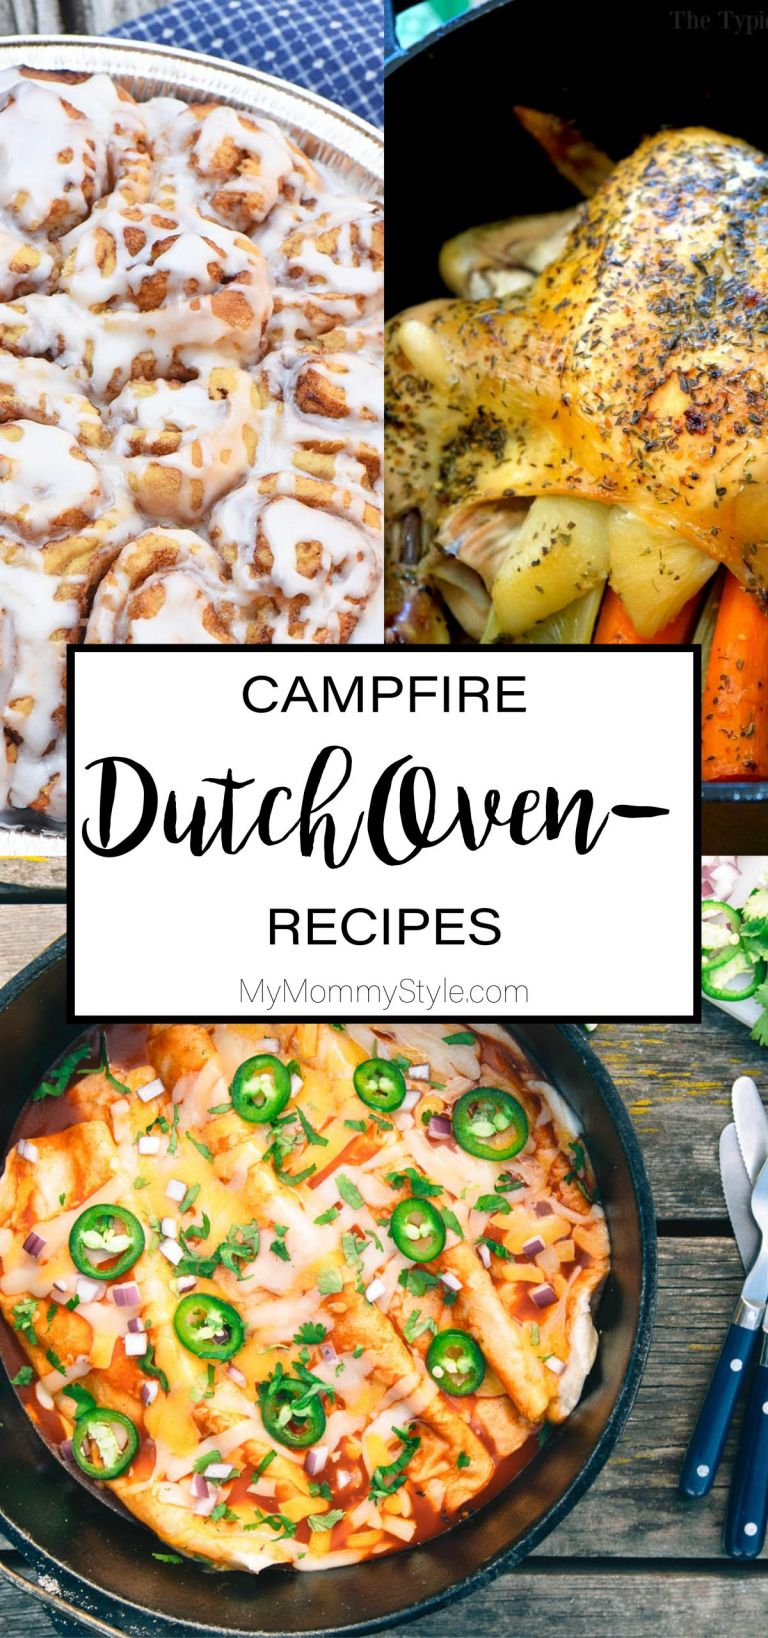 Dutch Oven Camping Recipes My Mommy Style